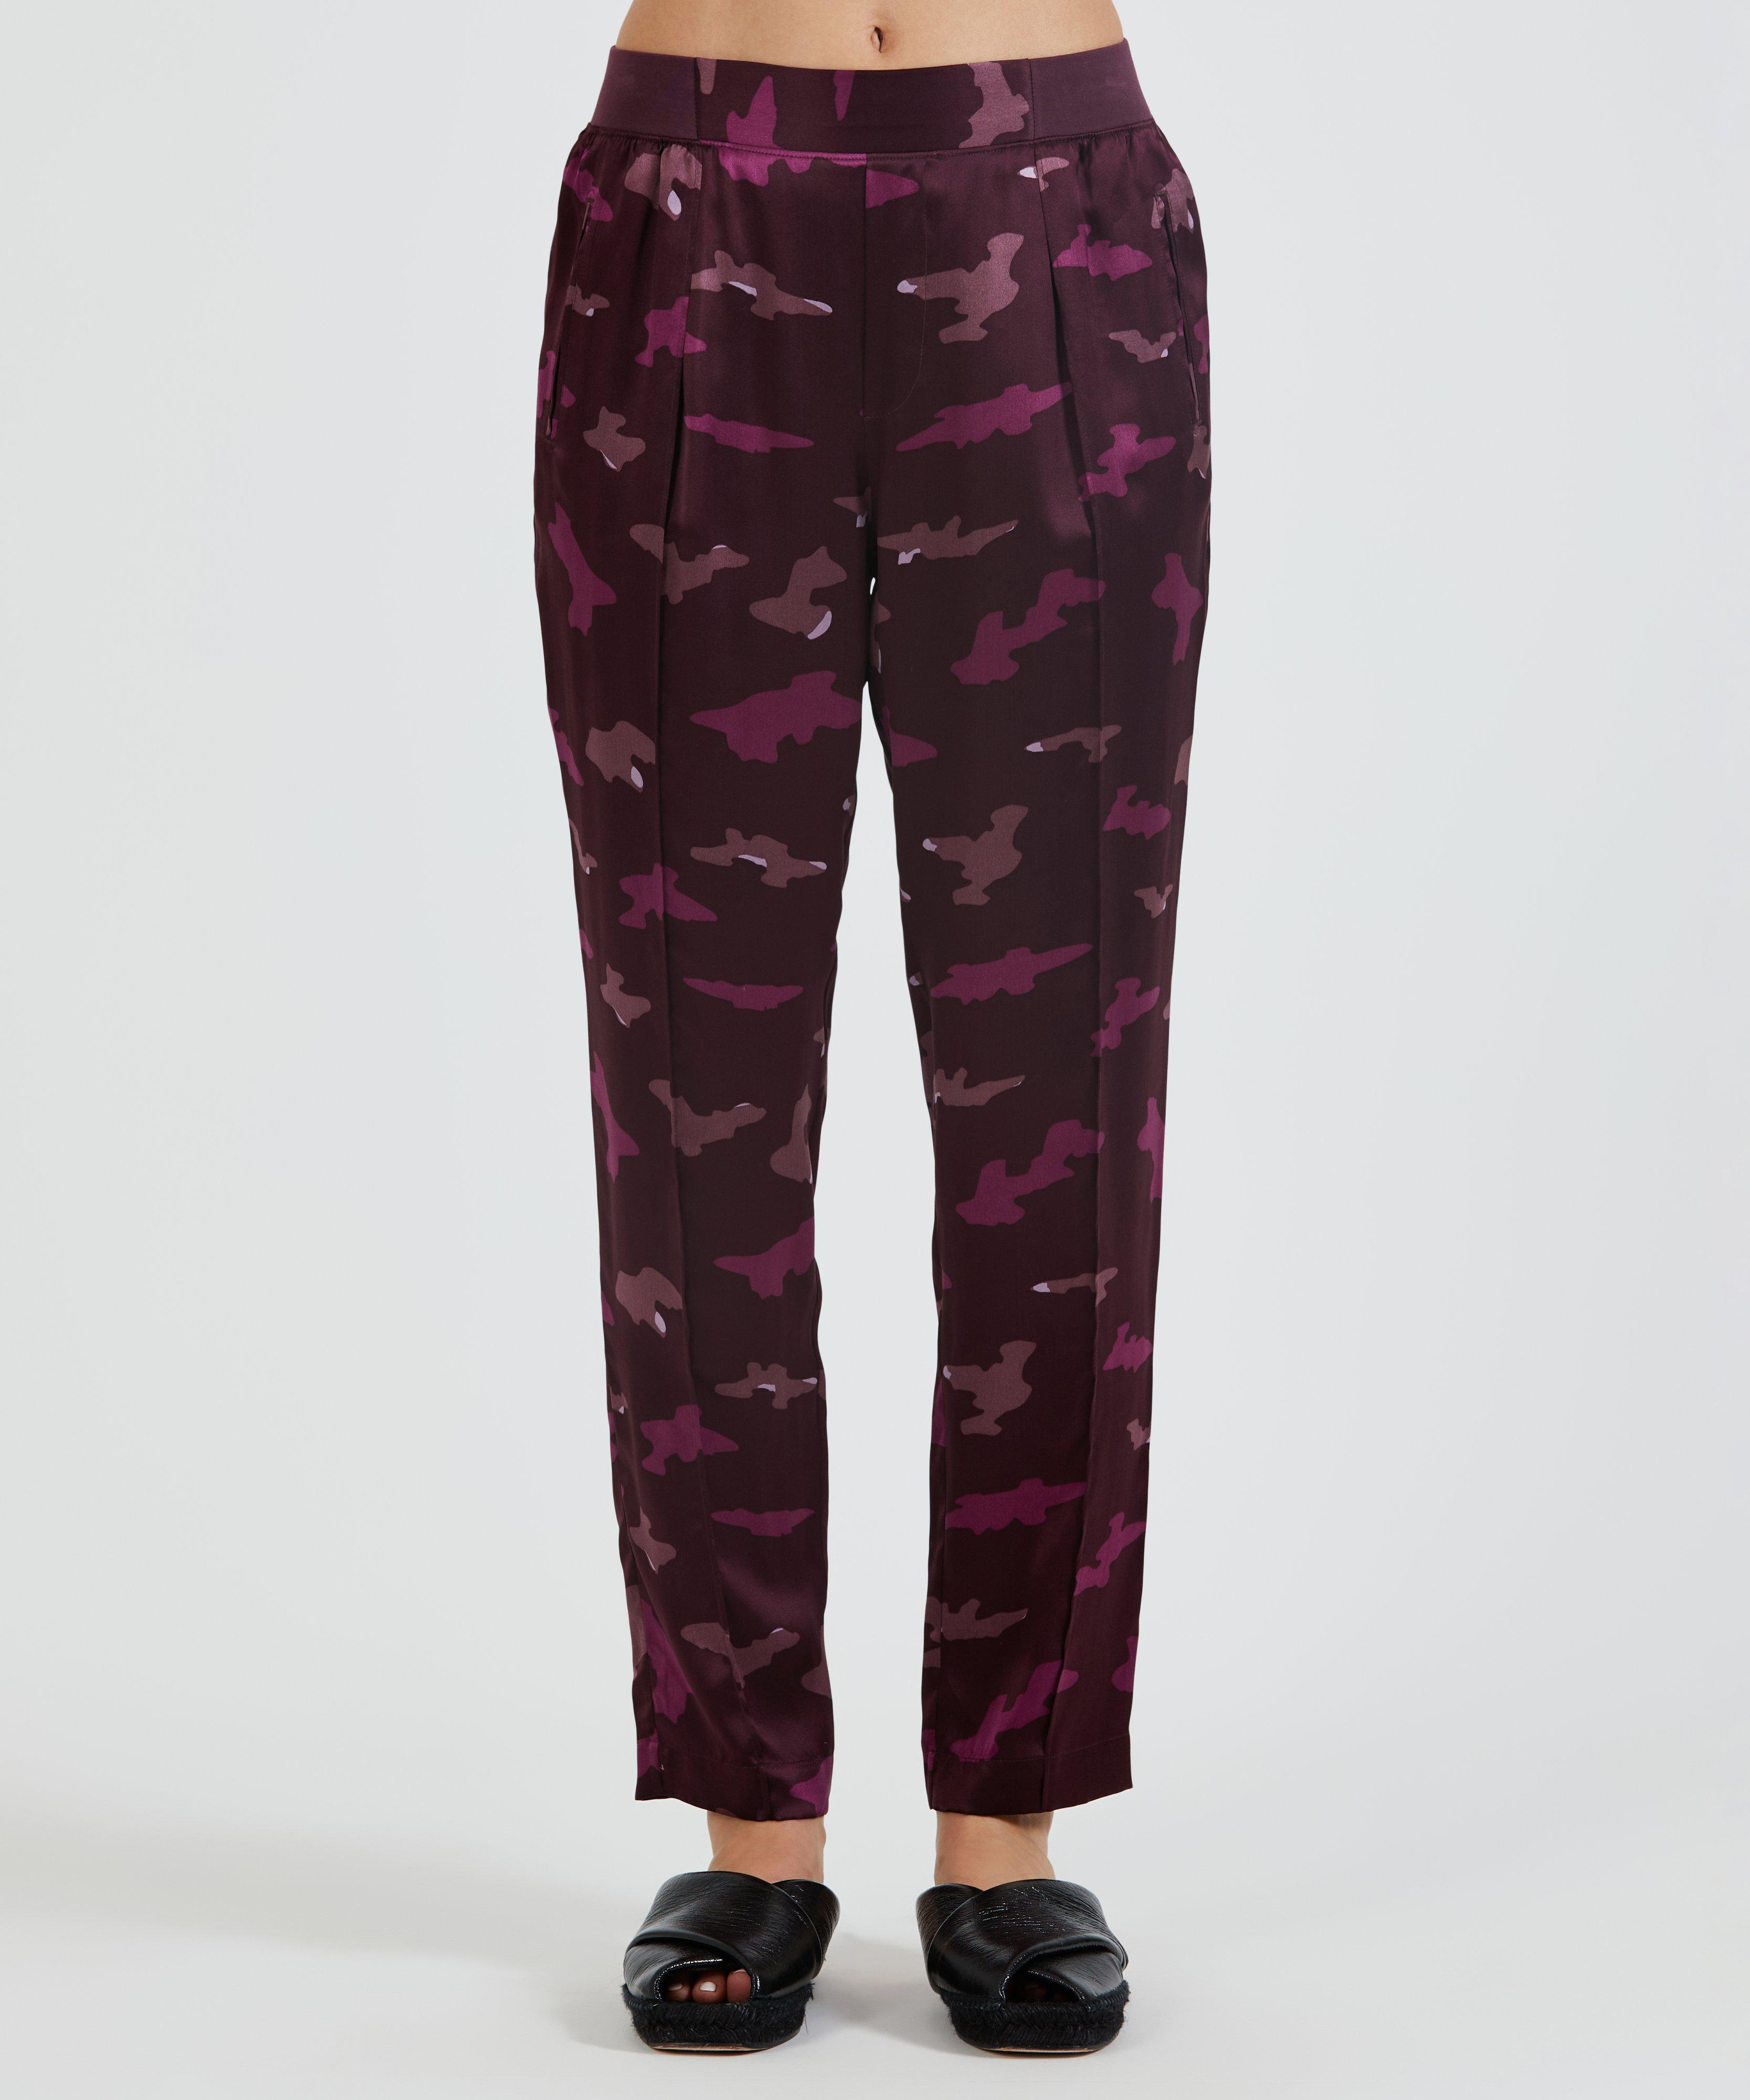 Silk Pull-On Pant - Abstract Camo